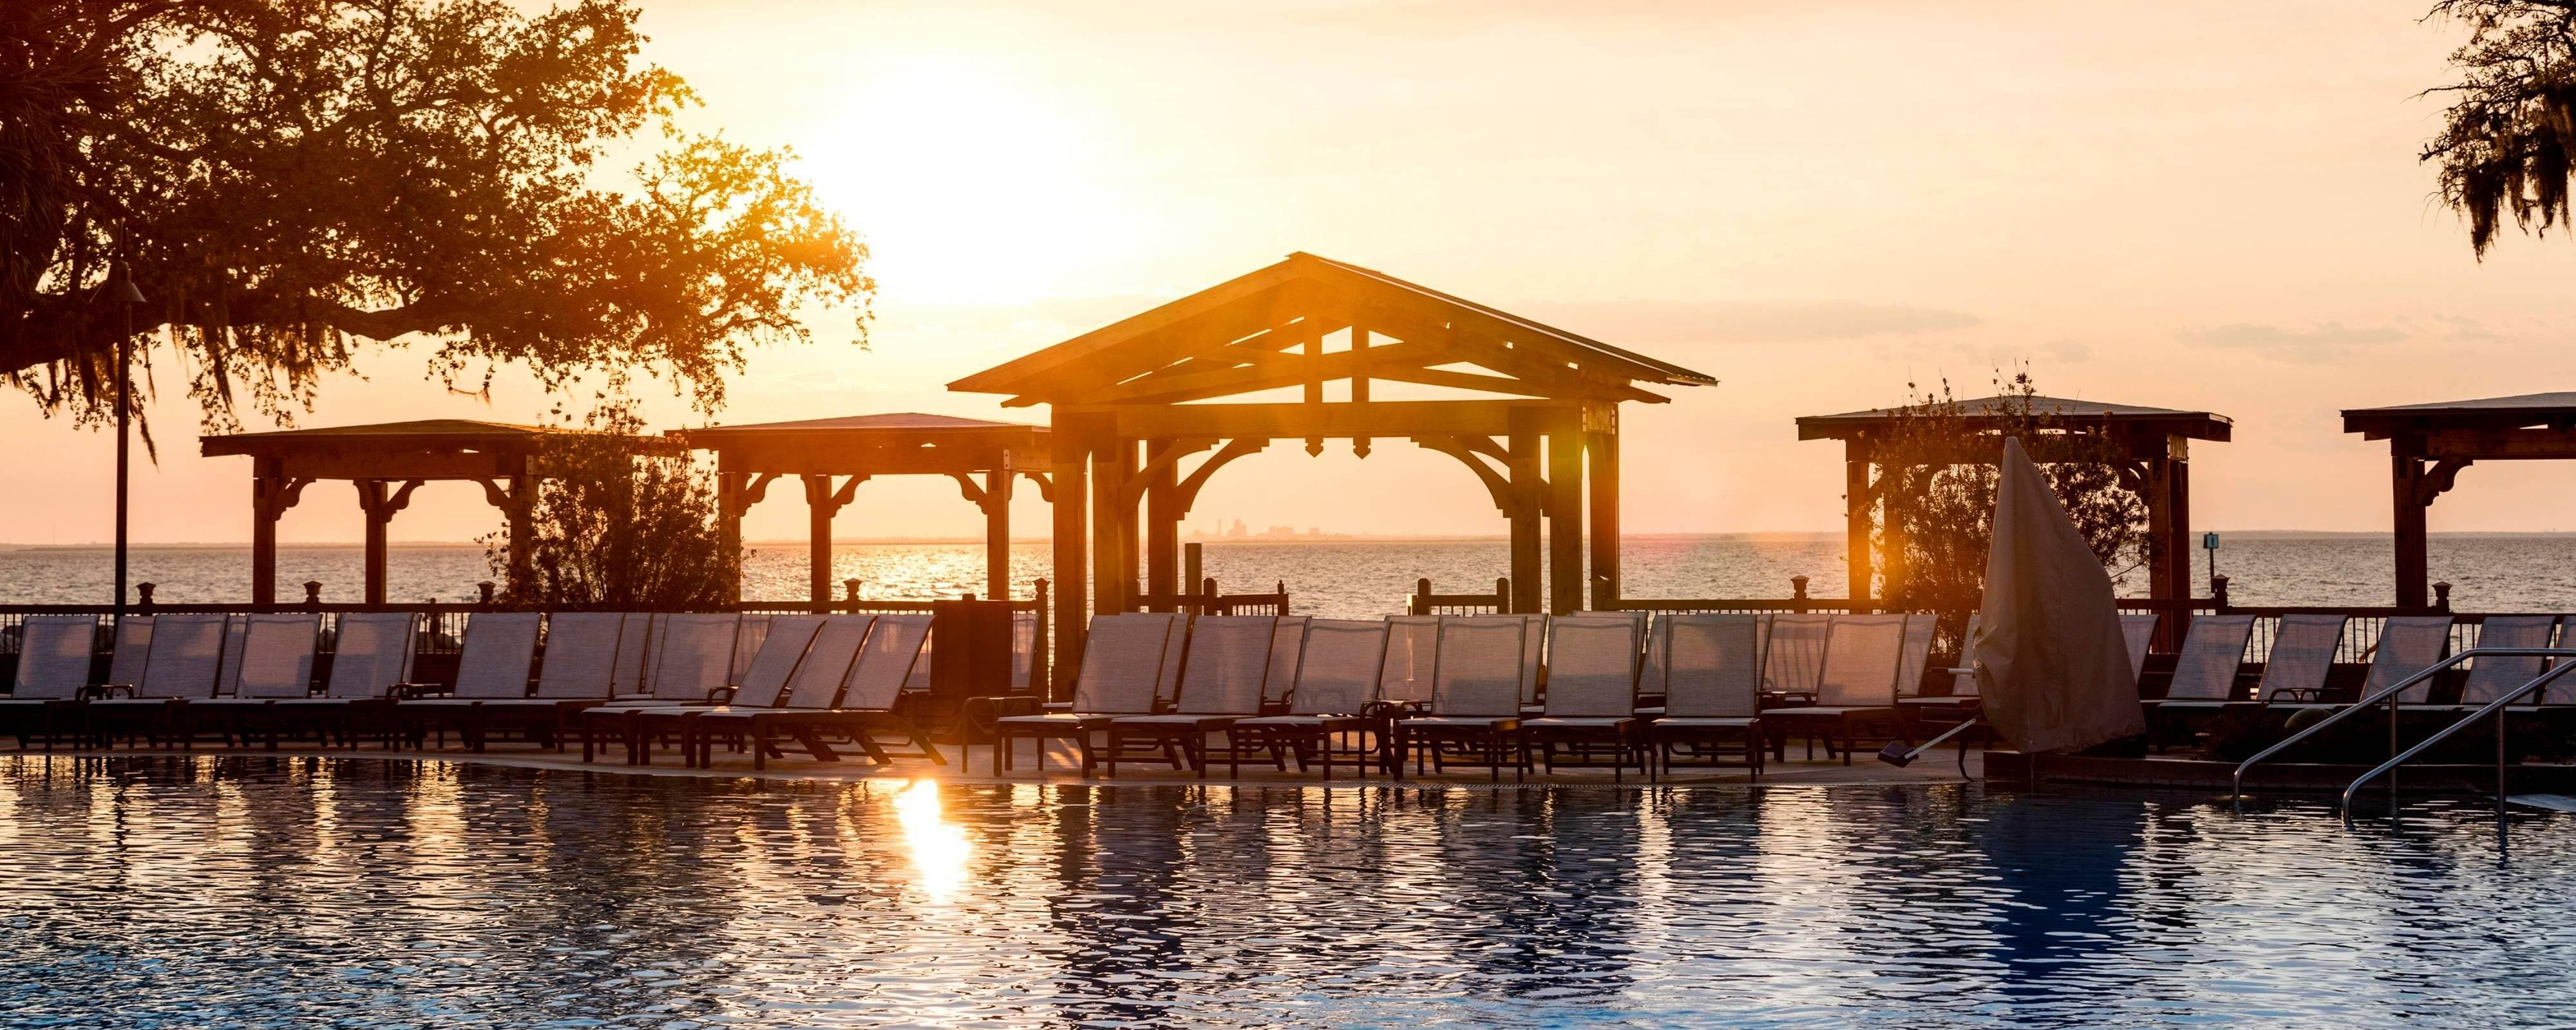 Fairhope Al Hotels With Pool The Grand Hotel Golf Resort Spa Autograph